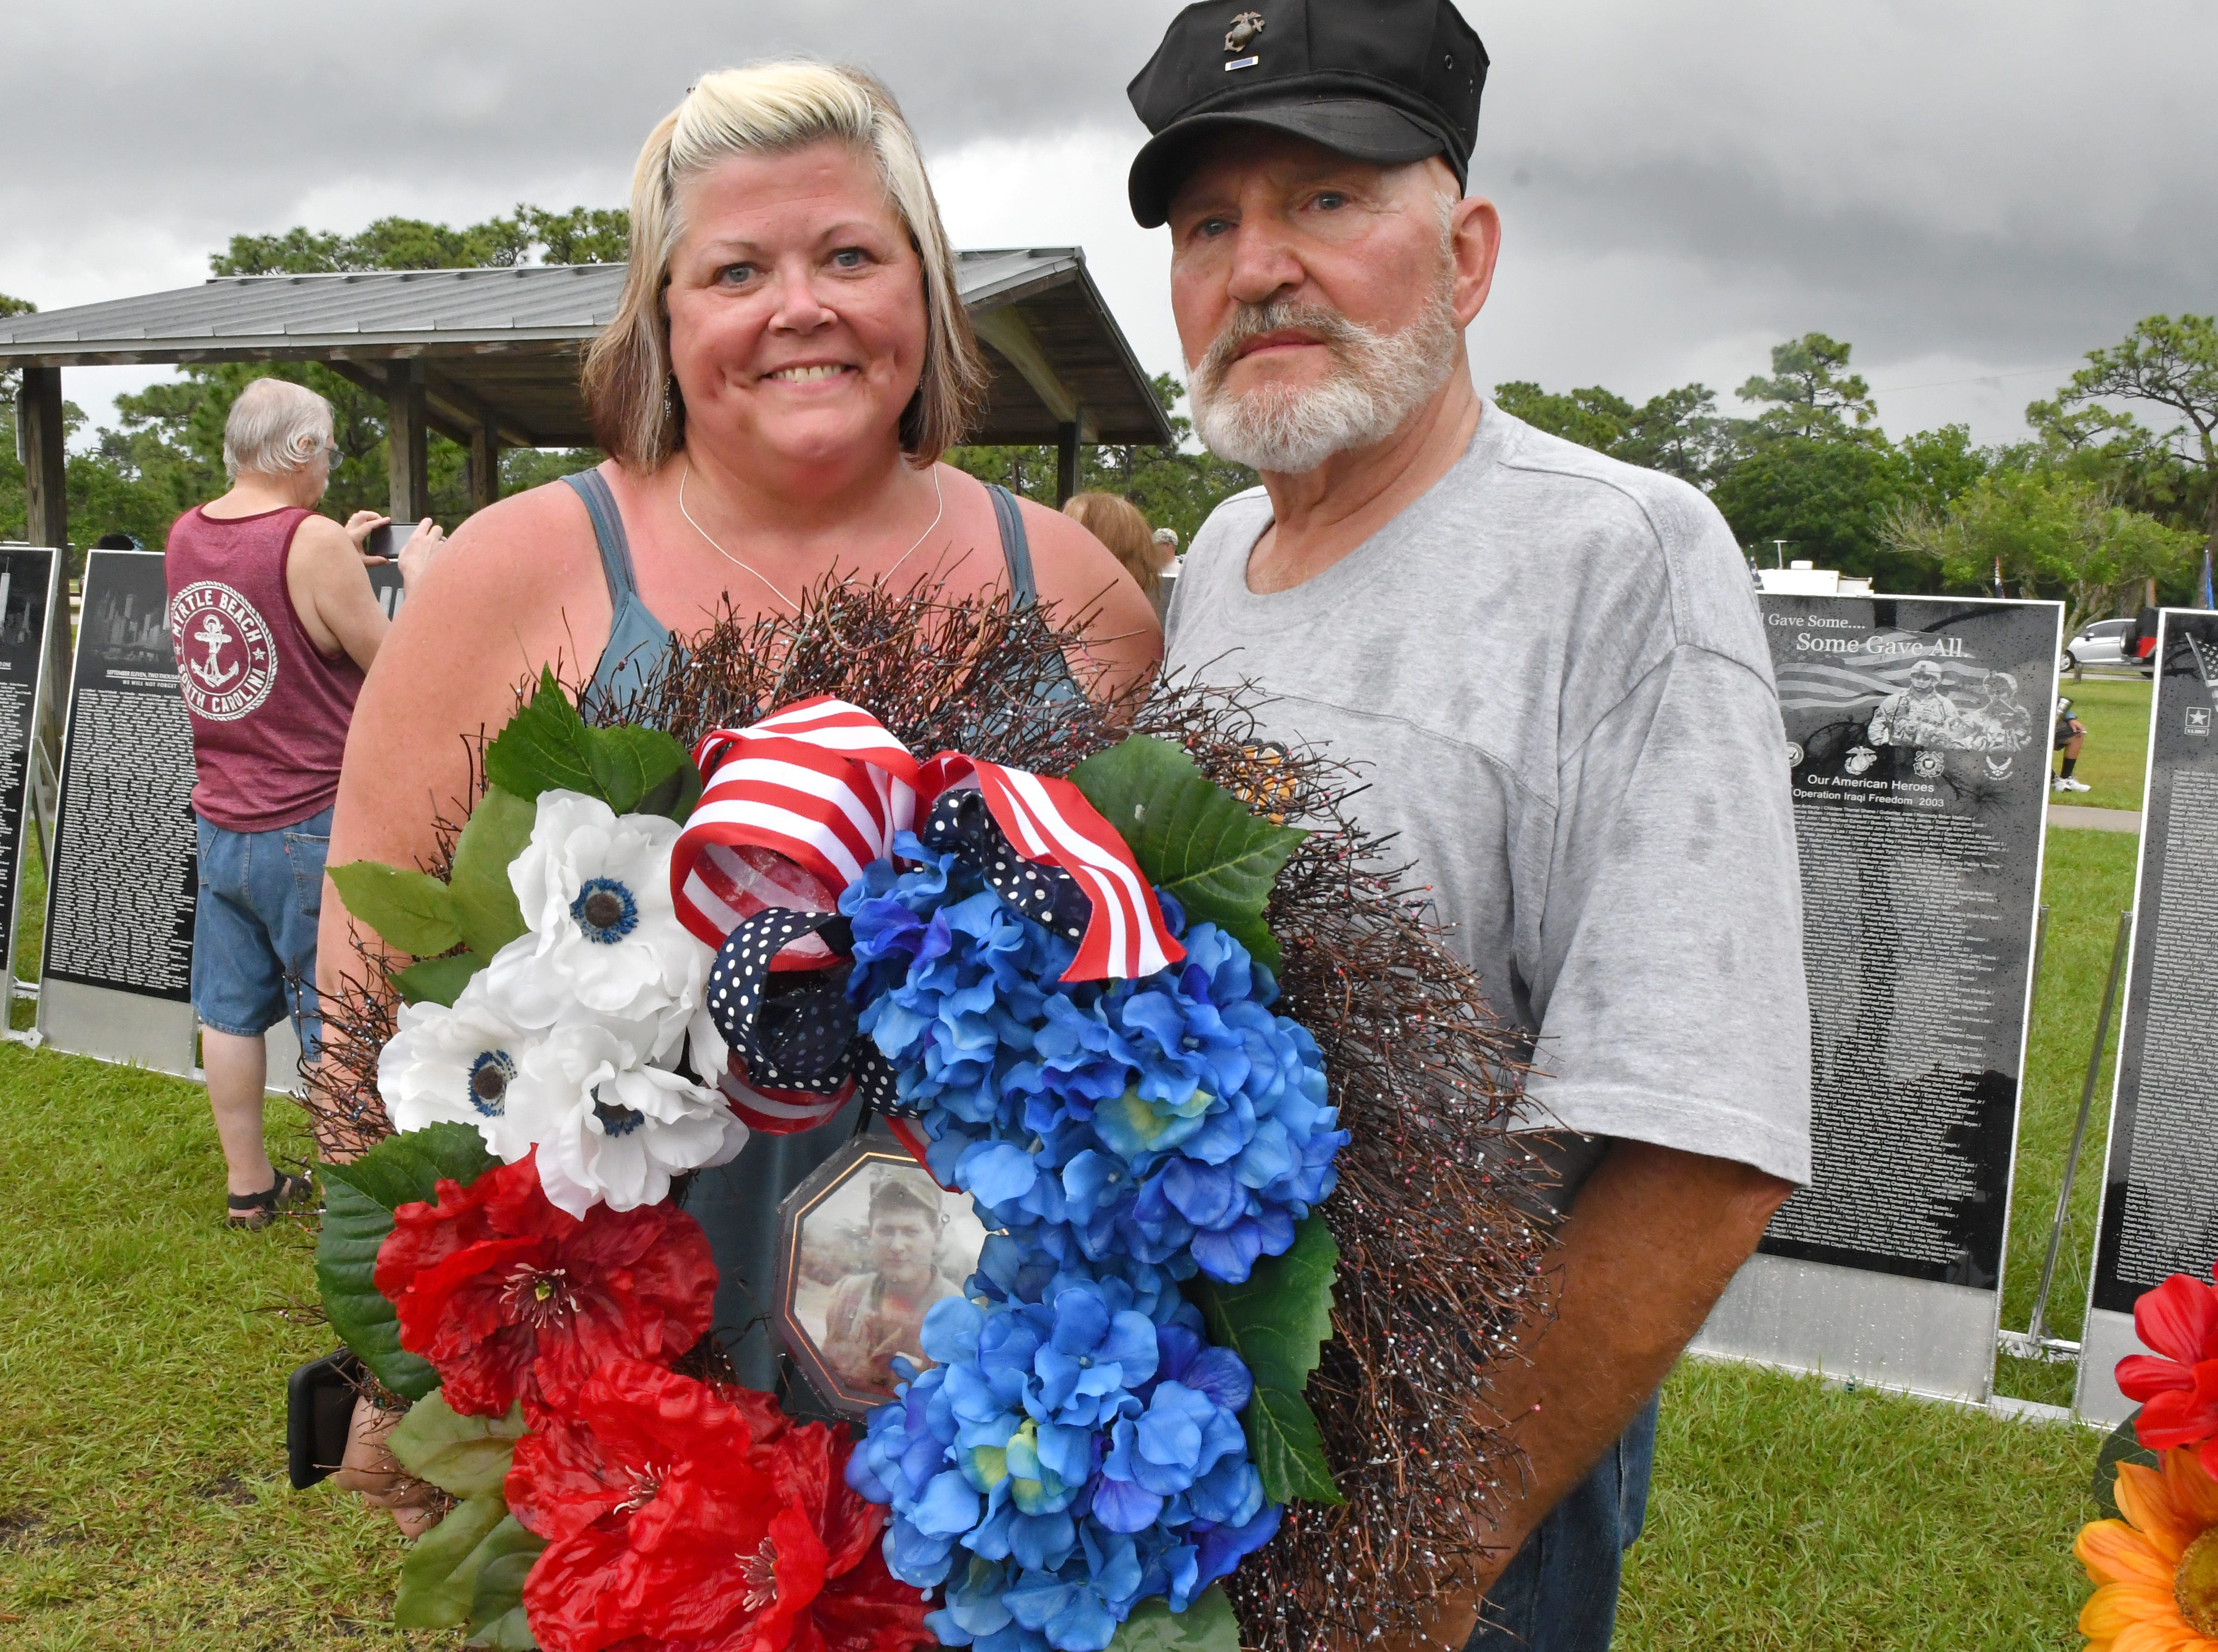 Kimberlee Thompson, whose father, James Borawski, was killed in Vietnam in May of 1967 by the same mortar shell that wounded fellow Marine Ben Bydalek of Melbourne, seen here at right. Kimberlee, of Kansas City, and Ben met last November and have become friends. They placed a wreath in memory of her father at Monday's presentation of wreaths and opening ceremony at the Vietnam Traveling Memorial Wall, which will be set up until May 12. It is part of The 32nd Annual Vietnam and All Veterans Reunion, a free event open to the public at Wickham Park in Melbourne May 9-12.